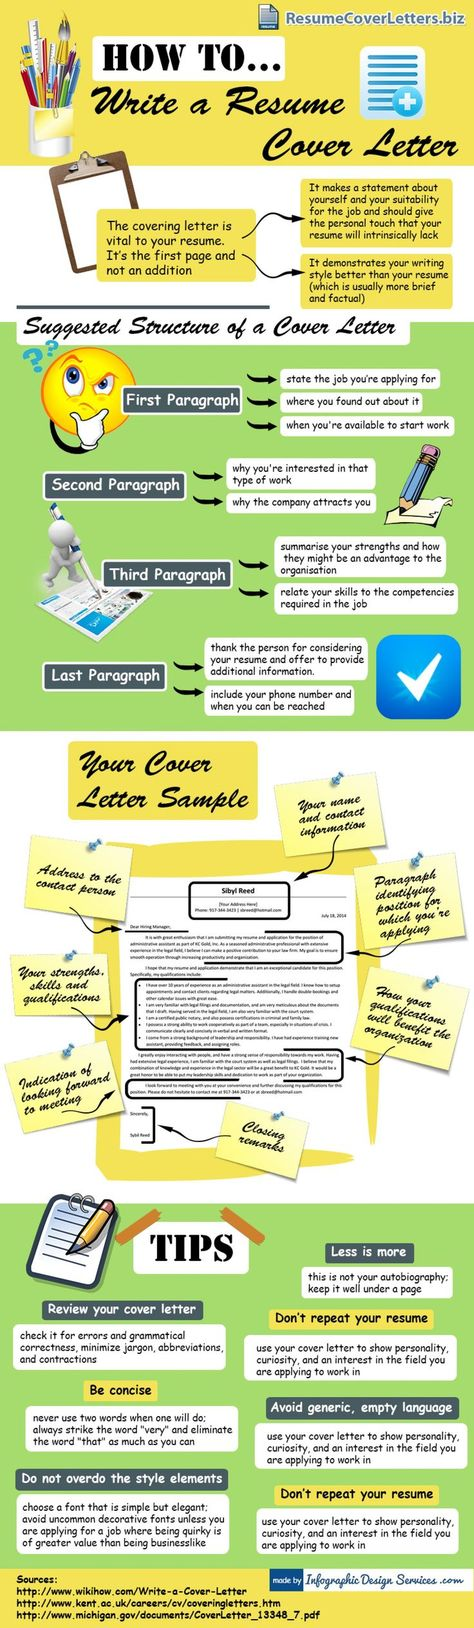 How to write a cover letter Template, Resume cover letters and - how to write a resume wikihow